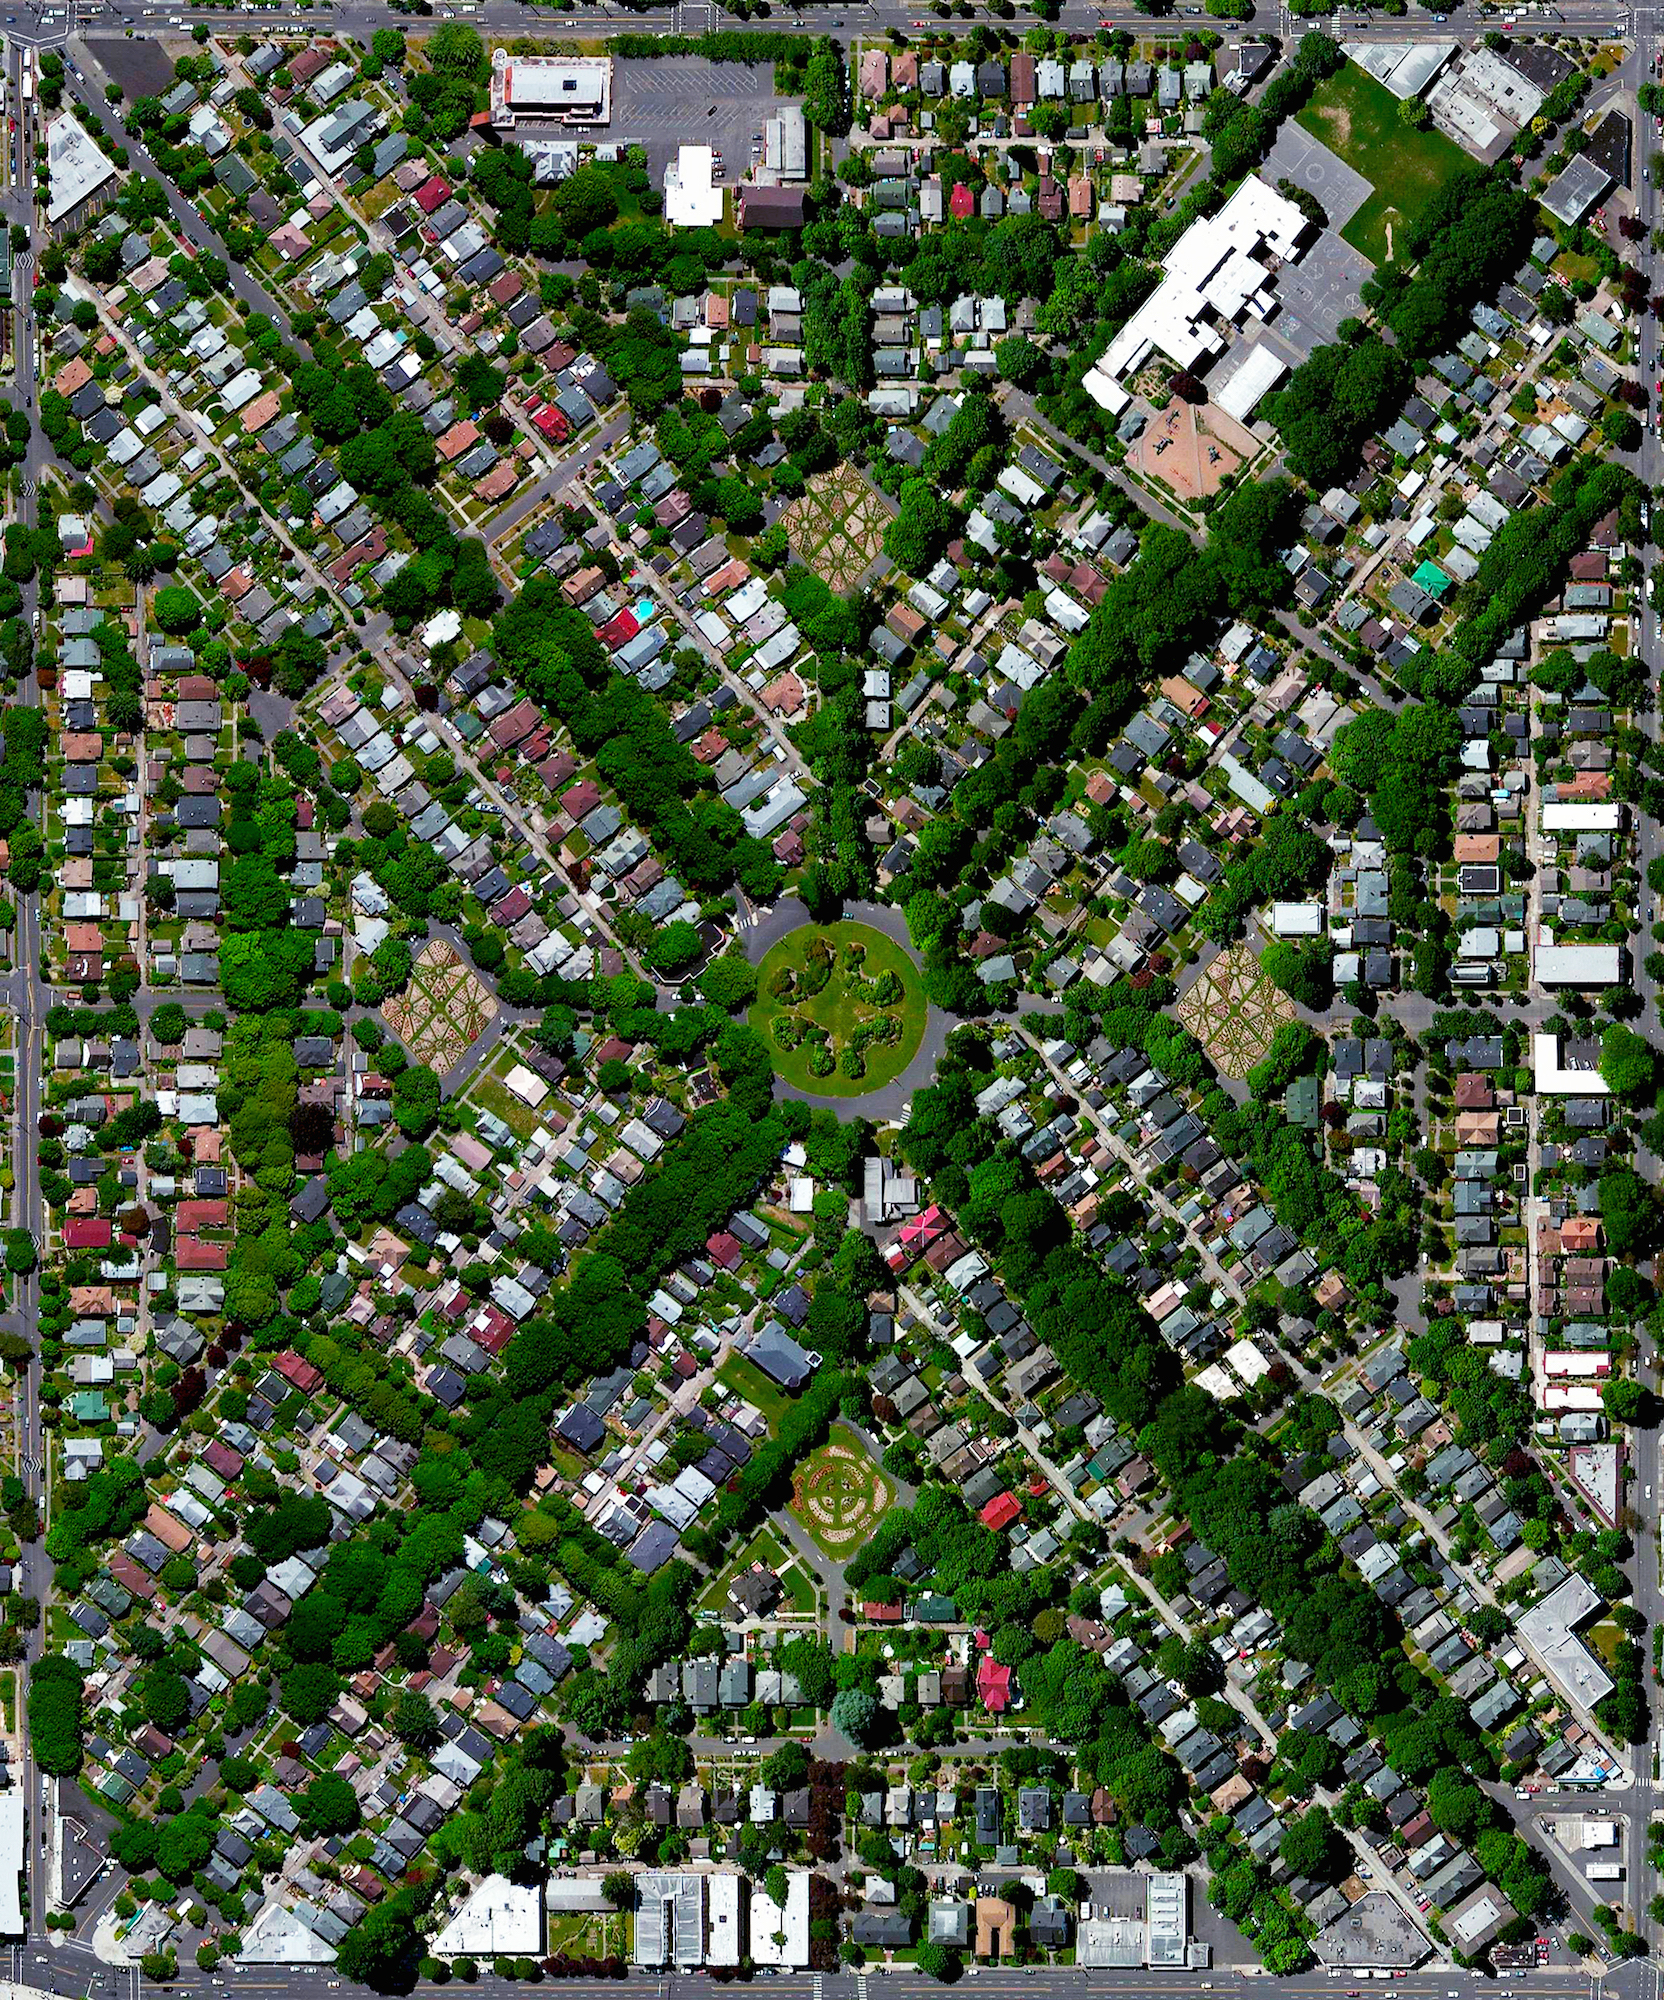 """5/2/2016   Ladd's Addition   Portland, Oregon, USA  45°30′31″N 122°38′58″W    In one week I'll be traveling to the wonderful city of Portland, Oregon!  This Overview shows Ladd's Addition - Portland's oldest planned residential development. The neighborhood is recognizable with its diagonal street streets that are lined with American elm trees. Inspired by the L'Enfant Plan in Washington, D.C., the area is laid out in a """"wagon wheel"""" arrangement that contains four diamond-shaped rose gardens and a traffic circle surrounding a central park."""